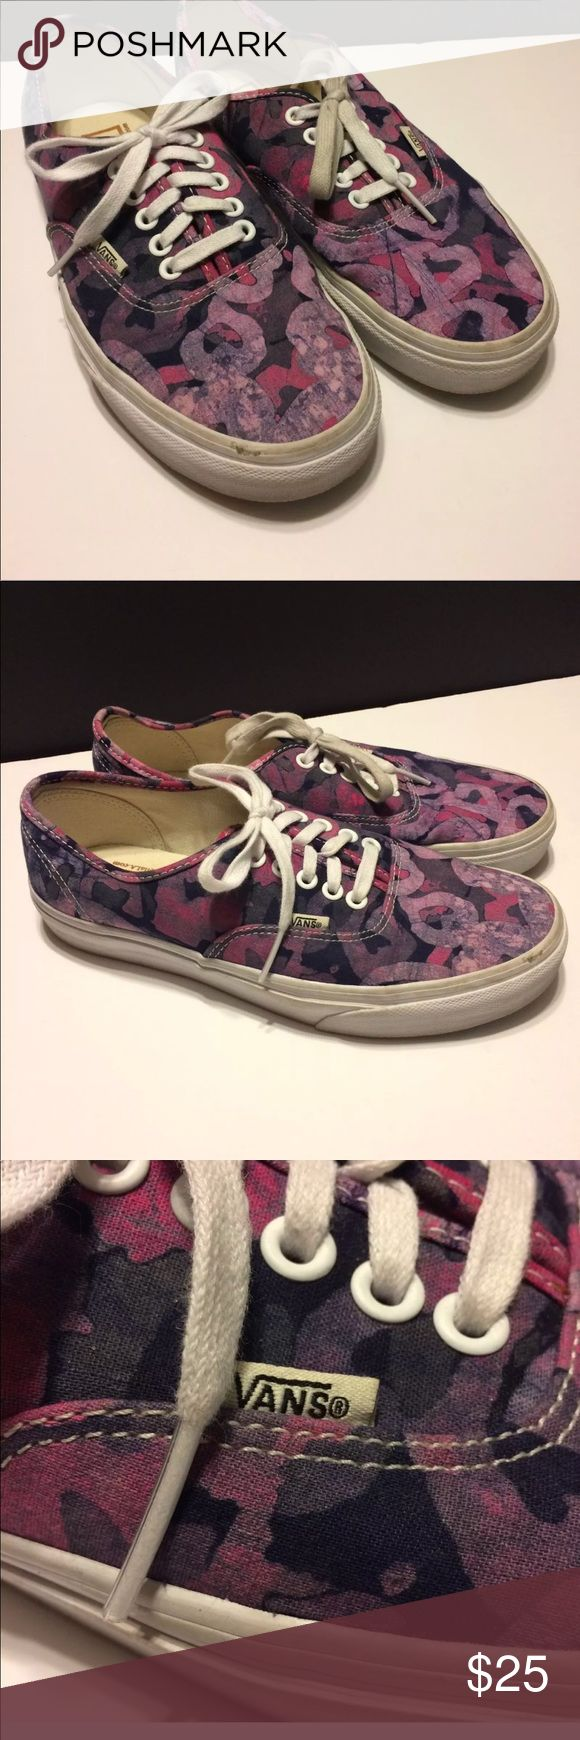 Della Vans, purple batik Della Vans, purple batik Size: Men's US: 7.5; Ladies US: 9 TC6D In good pre-owned condition tho the shoes do show some wear.  See Photos Vans Shoes